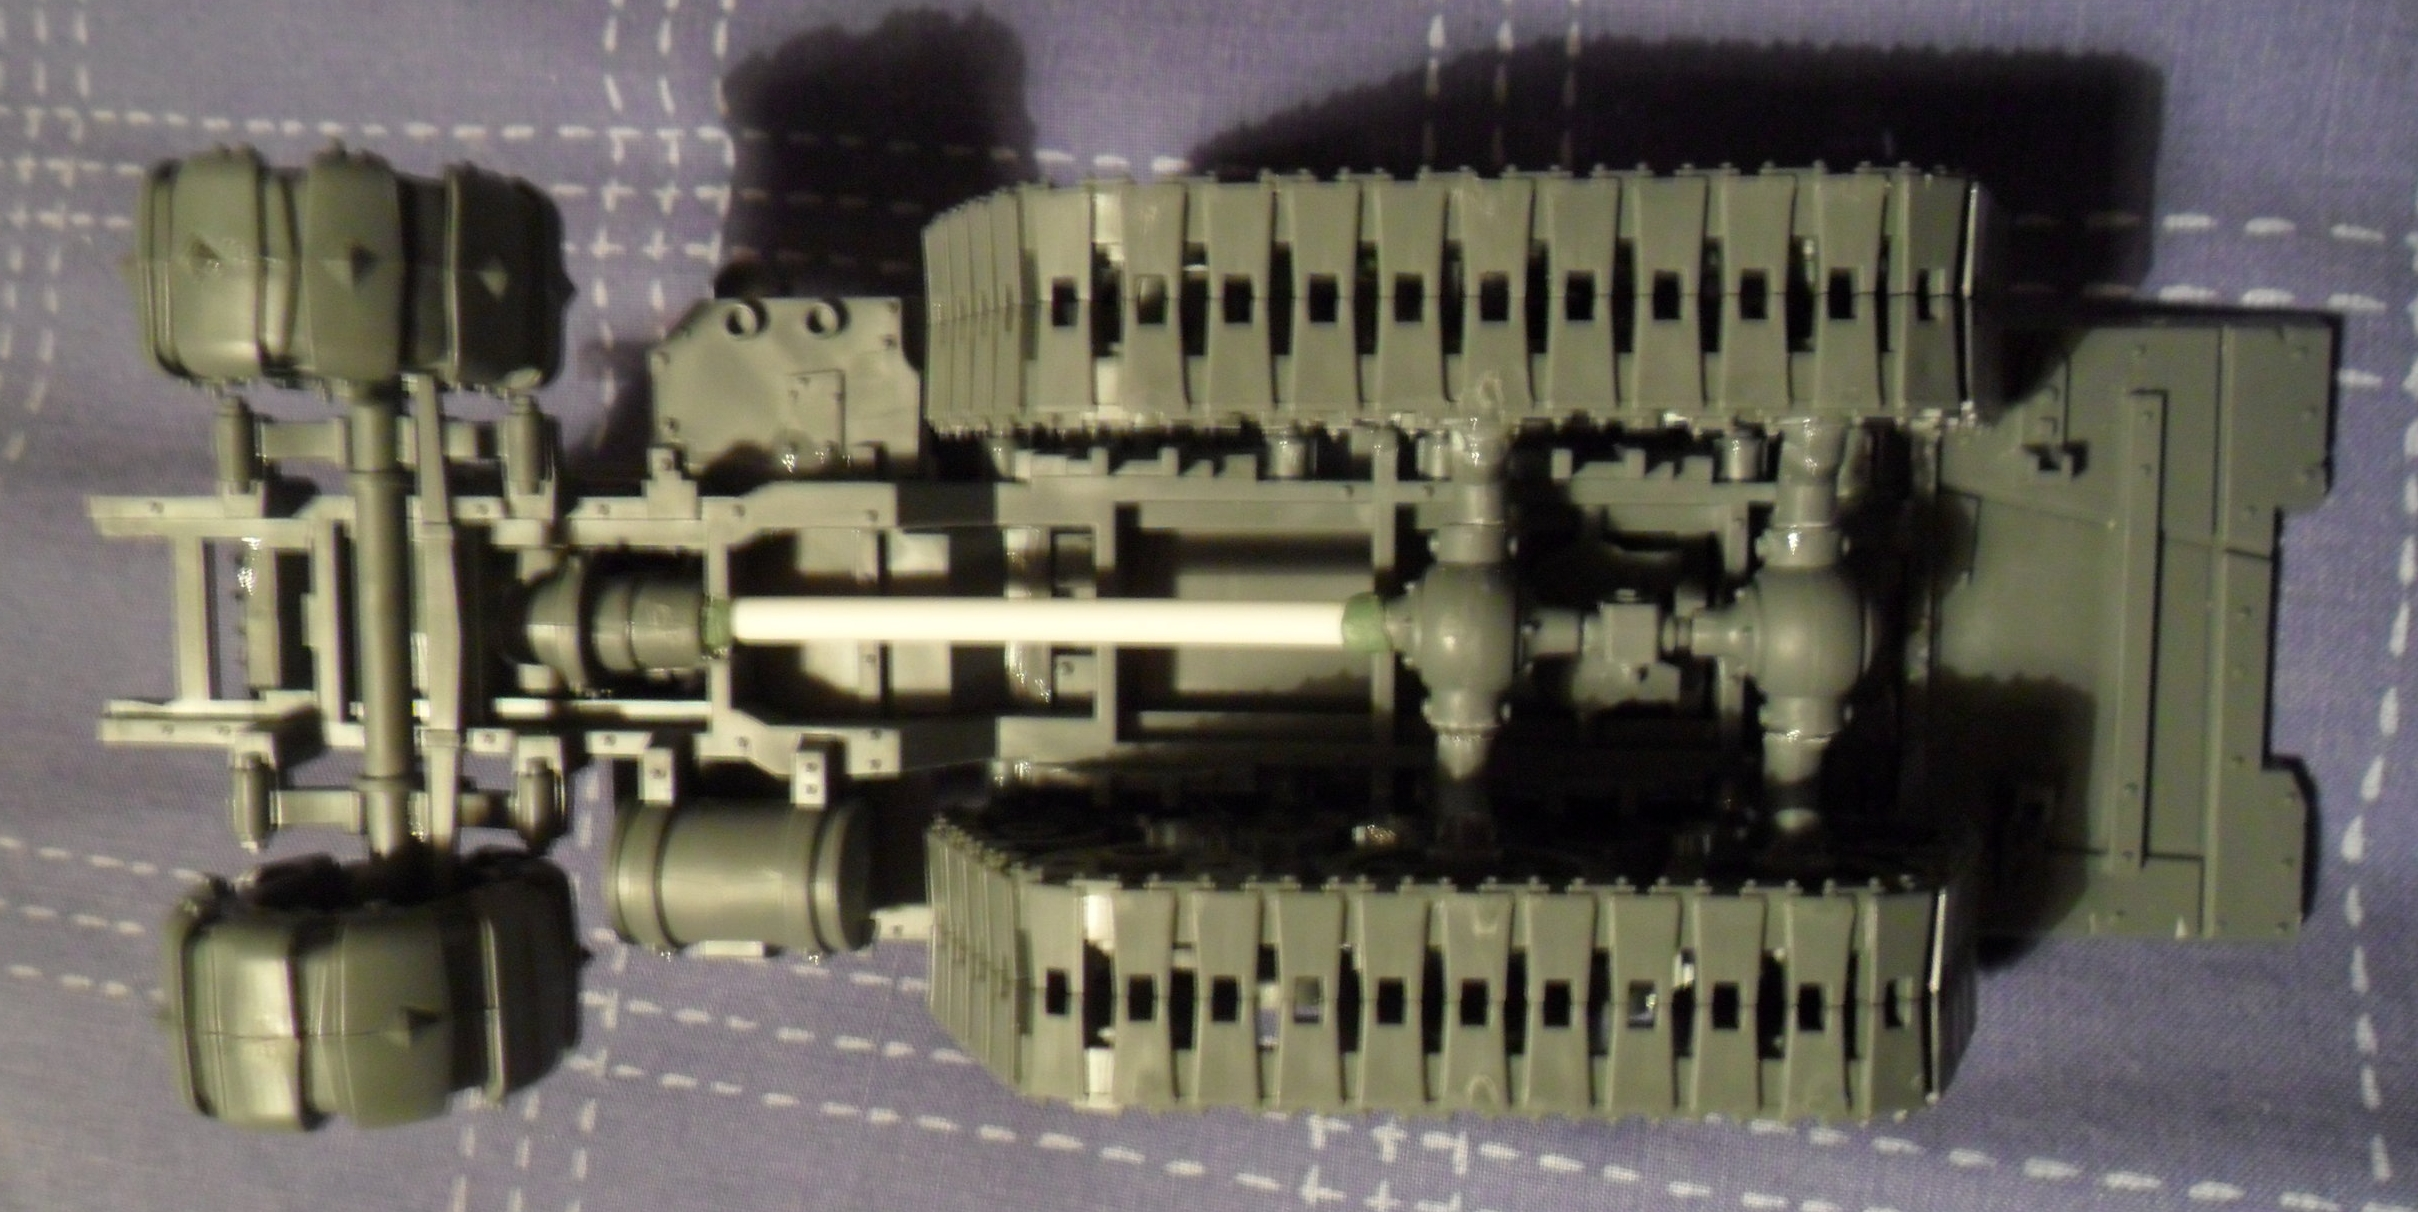 Underneath view showing transmission and axle assembly.